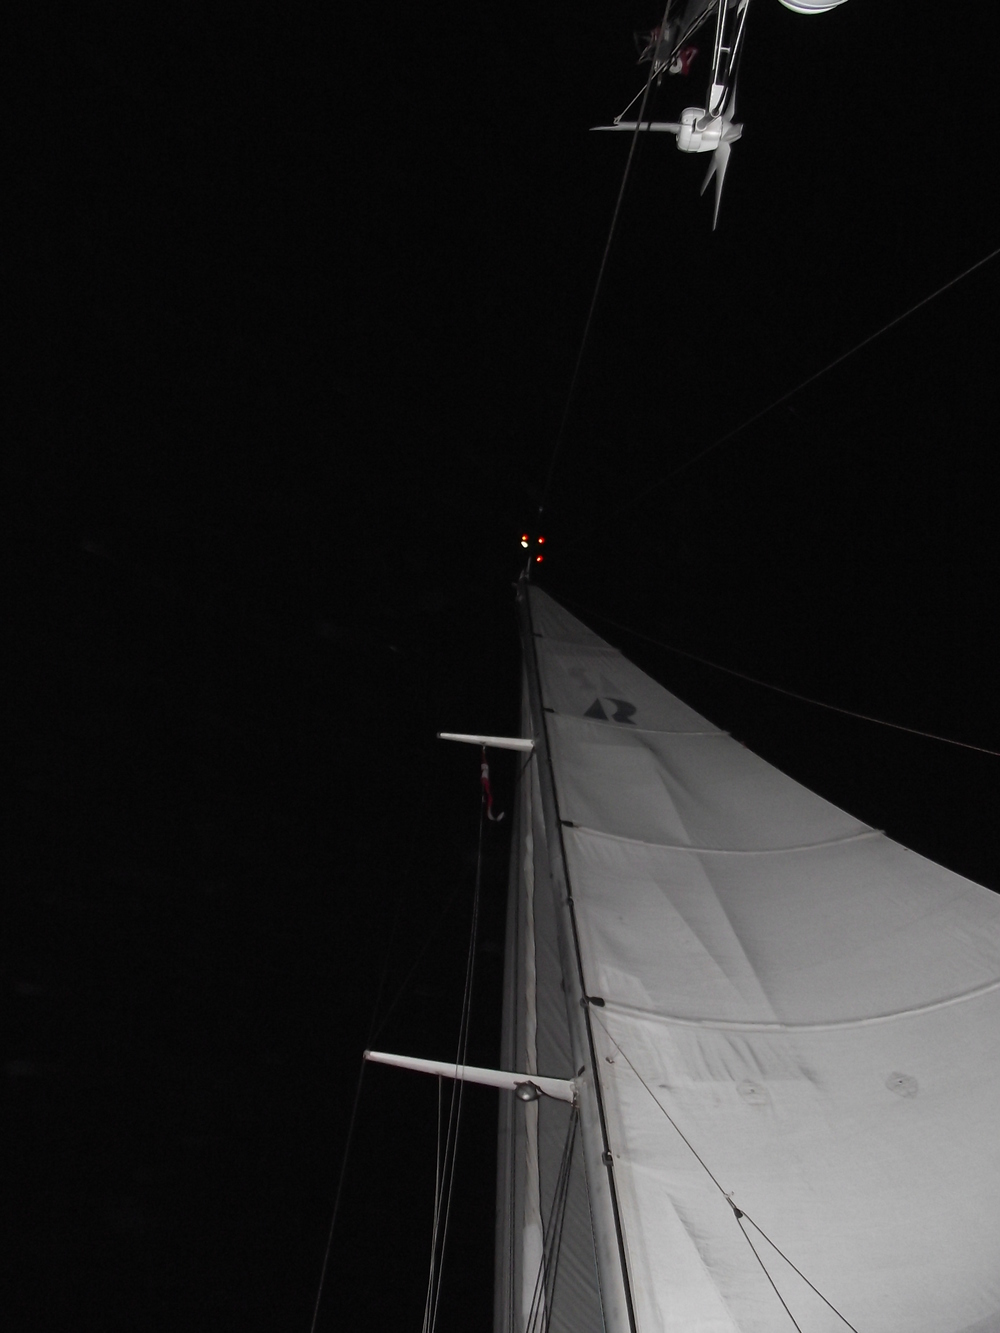 Night Sailing - Alcyone from Virgin Gorda to Florida - June night 2013